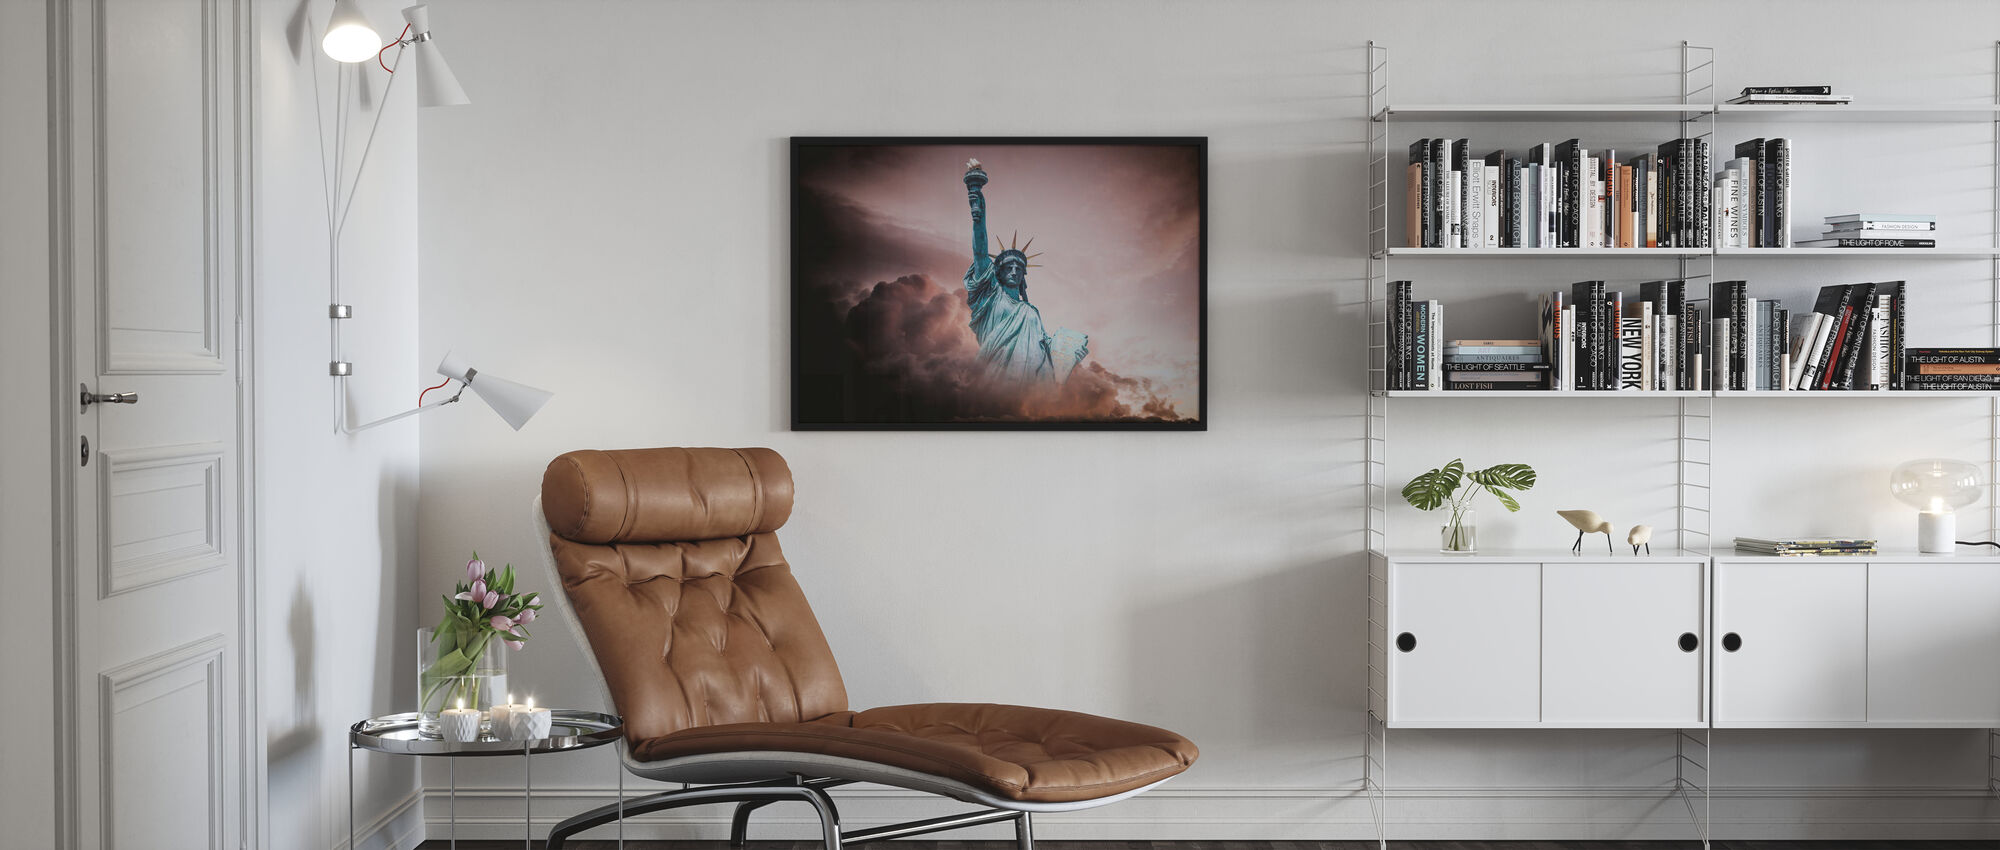 Statue of Liberty in Clouds - Framed print - Living Room